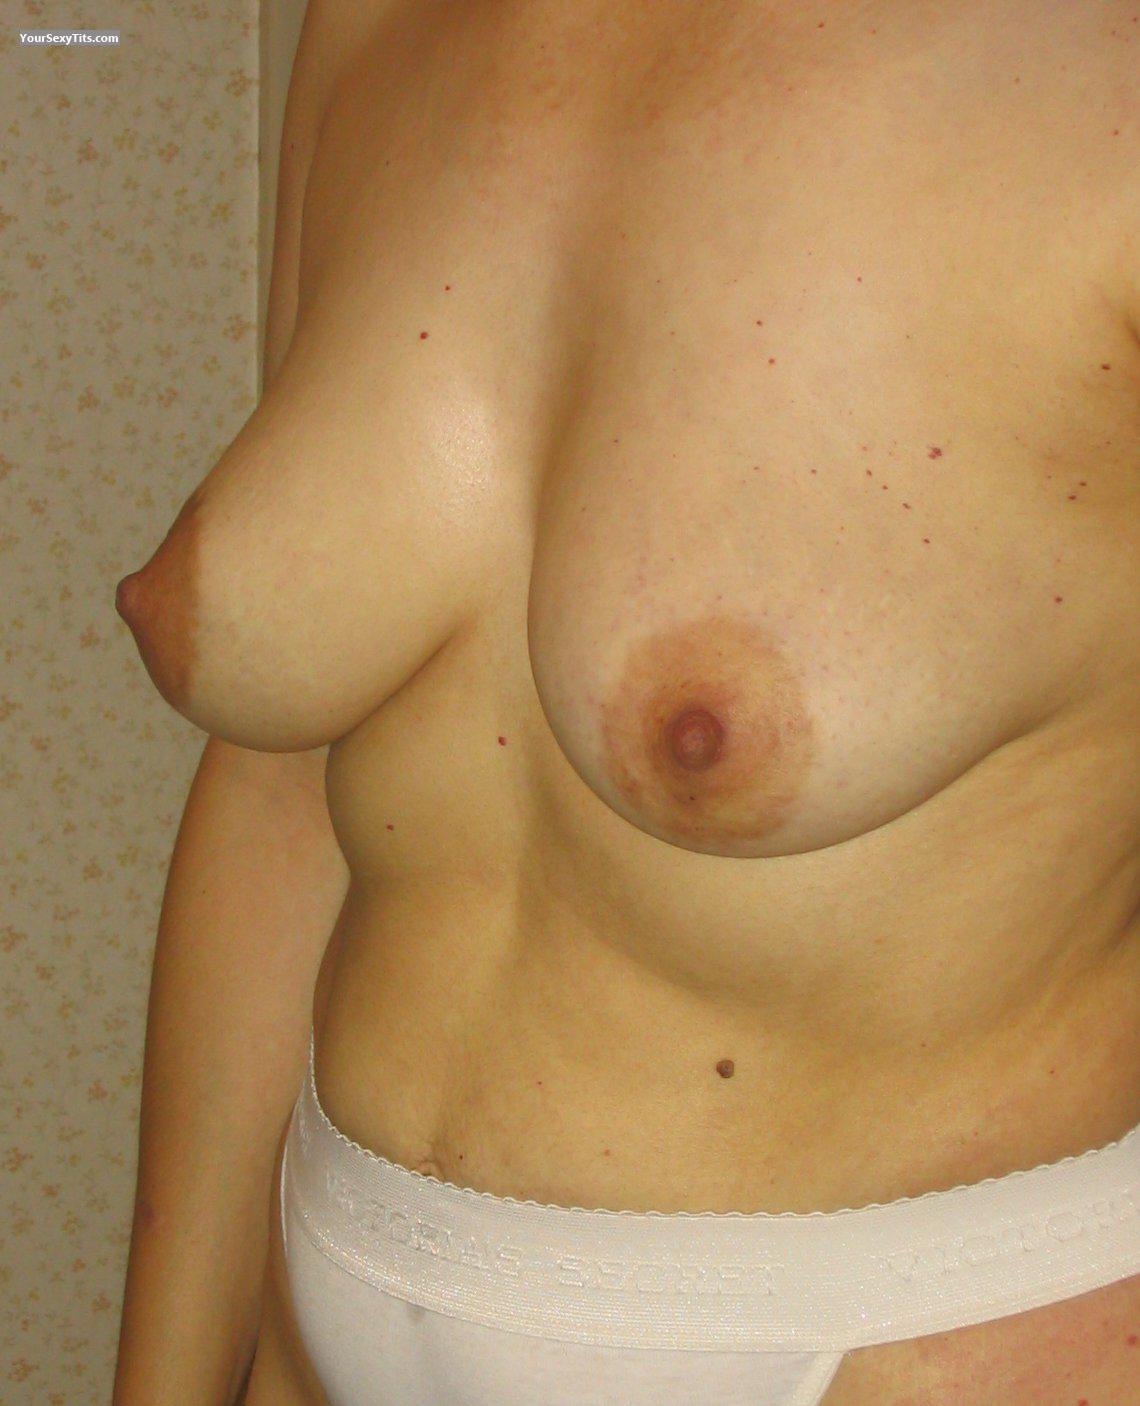 Medium Tits Johndlokcuc